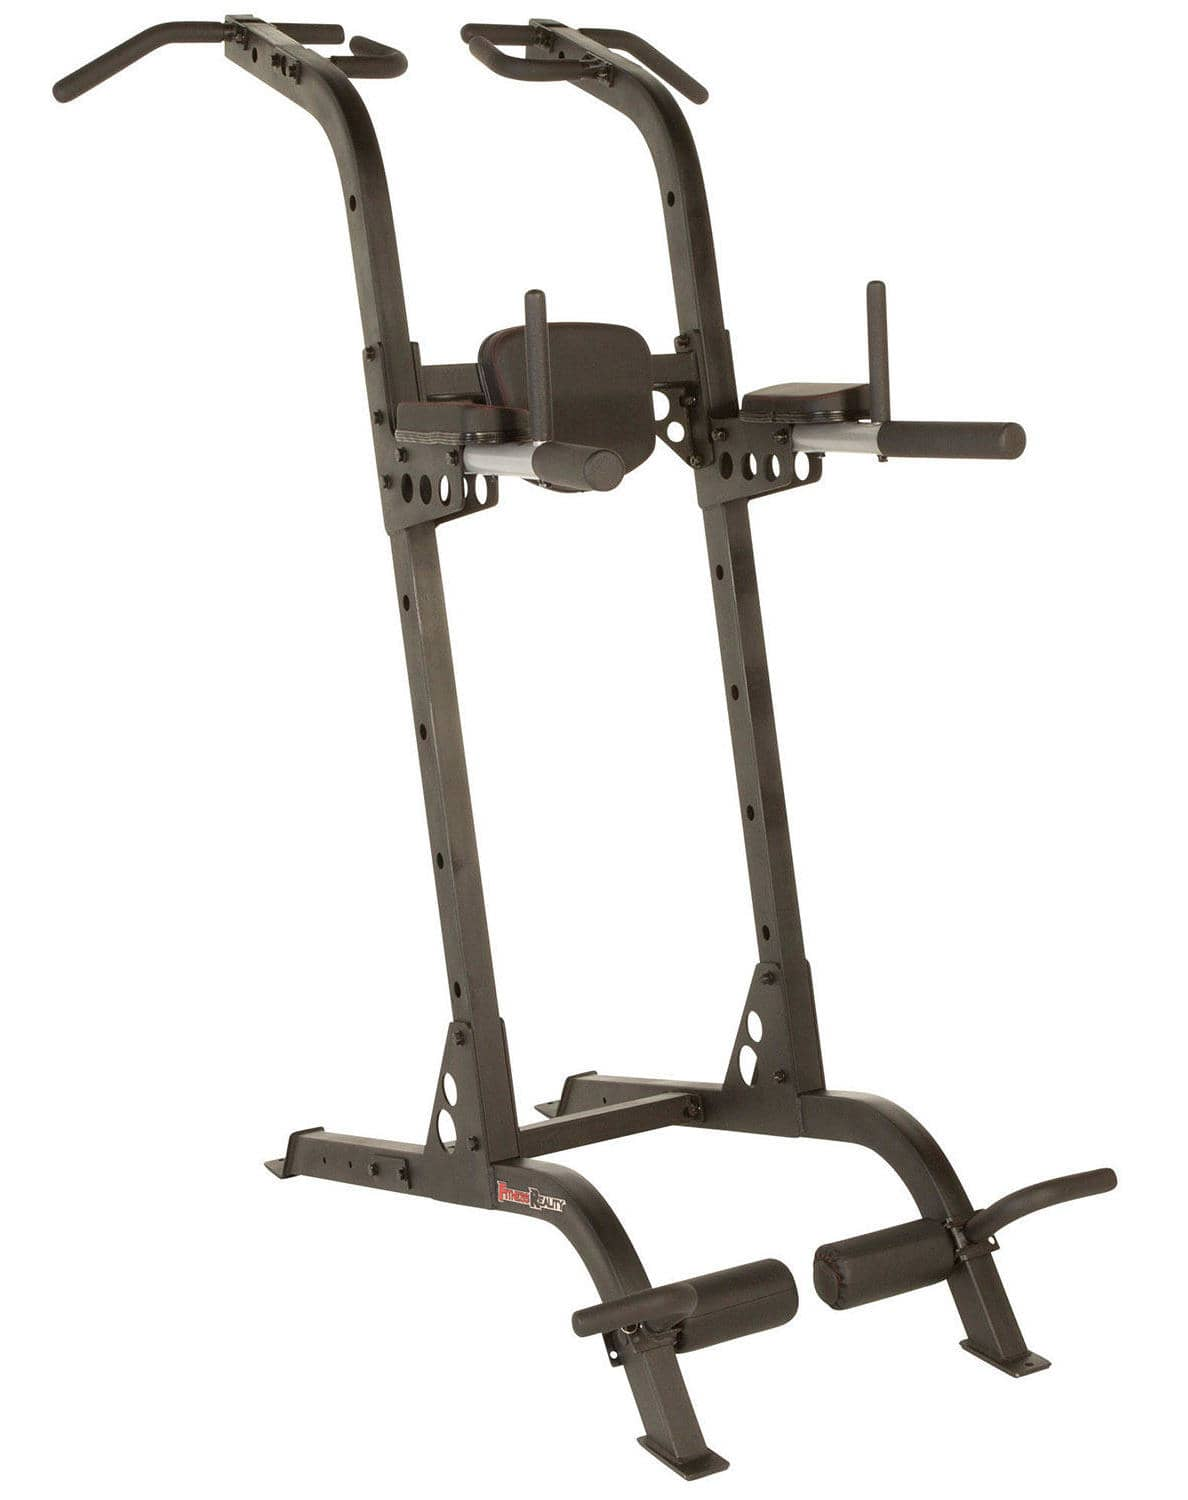 Fitness Reality X-Class High-Capacity Multi-Function Power Tower